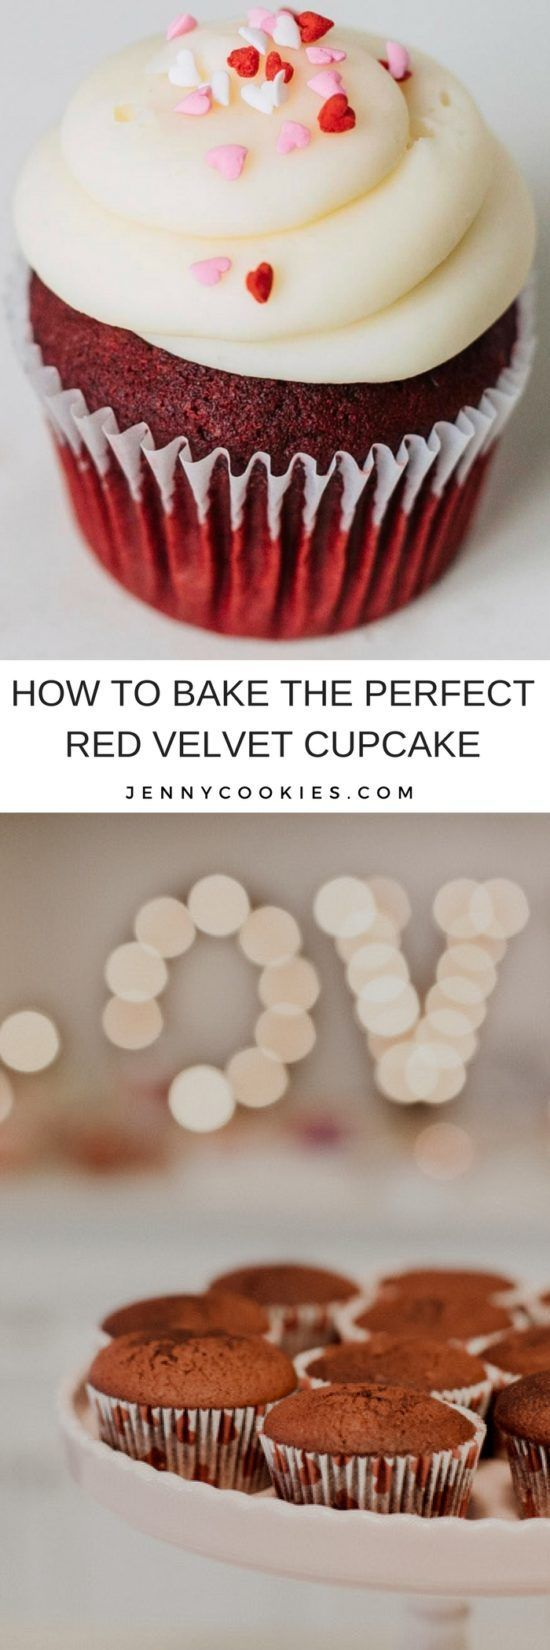 How to Bake the Perfect Red Velvet Cupcake | red velvet cake recipes | the best red velvet cupcakes | easy cupcake recipes | red velvet recipes | homemade red velvet cake || JennyCookies.com #redvelvetcake #redvelvet #easycupcakes